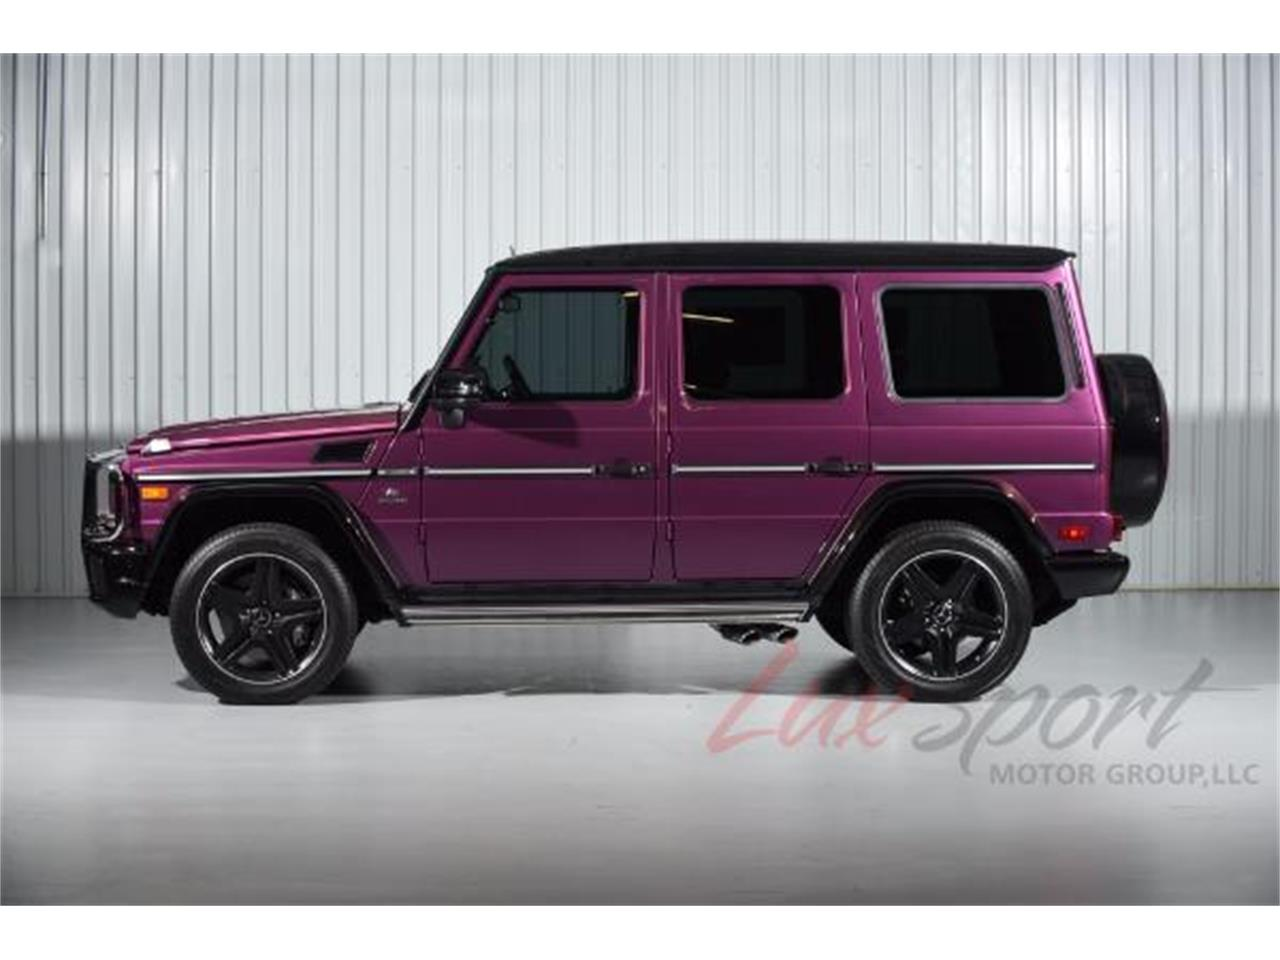 Large Picture of '16 Mercedes-Benz G63 located in New Hyde Park New York Auction Vehicle Offered by LuxSport Motor Group, LLC - MO0I